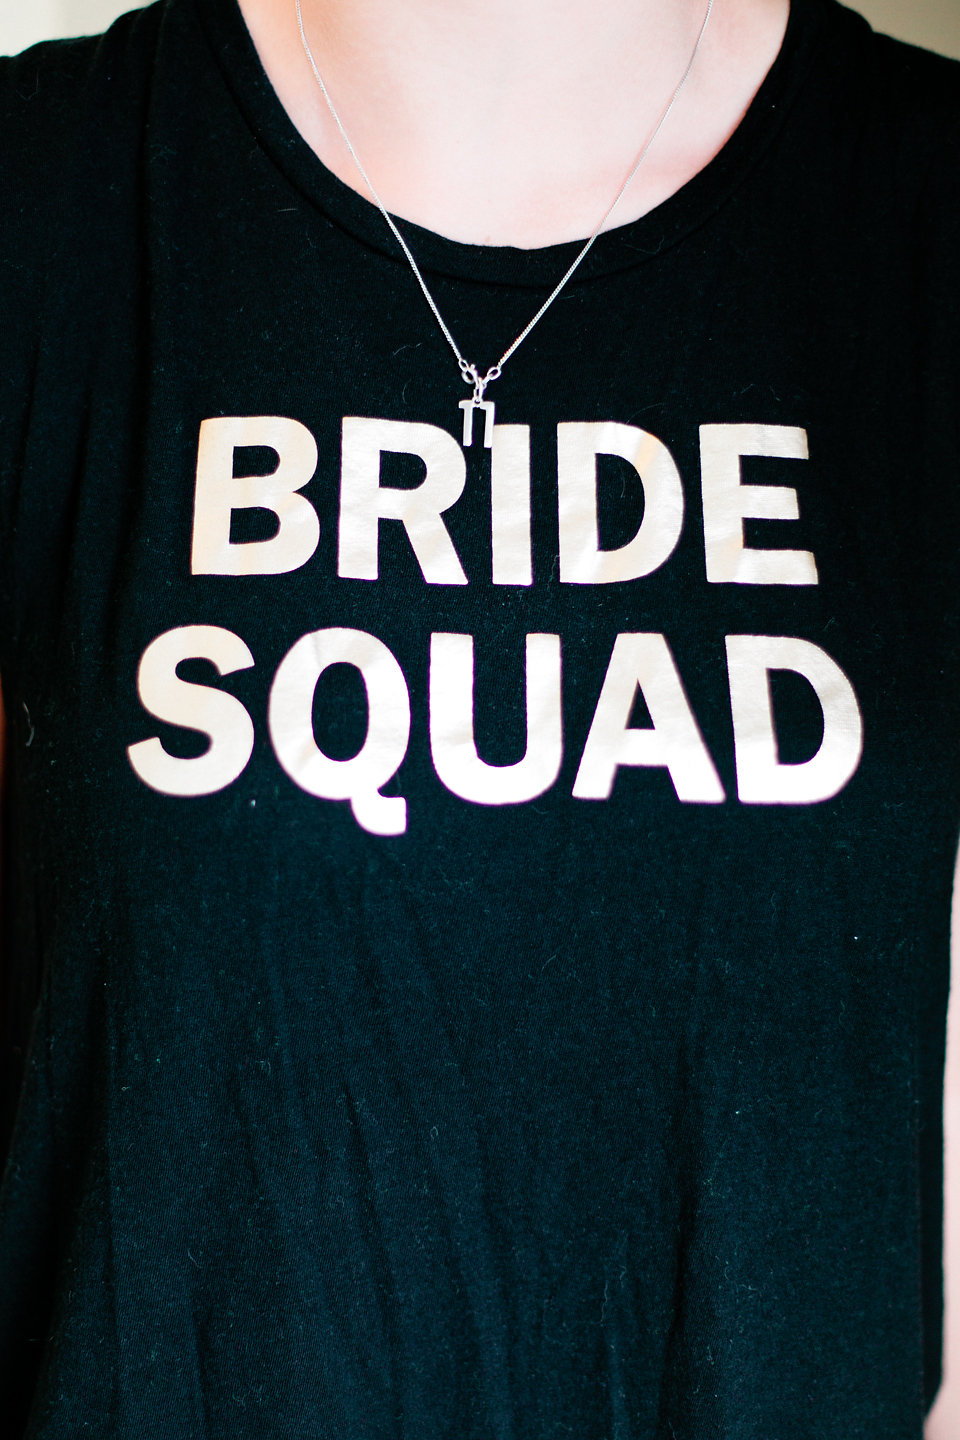 The bridal party sported cute shirts courtesy of the bride.